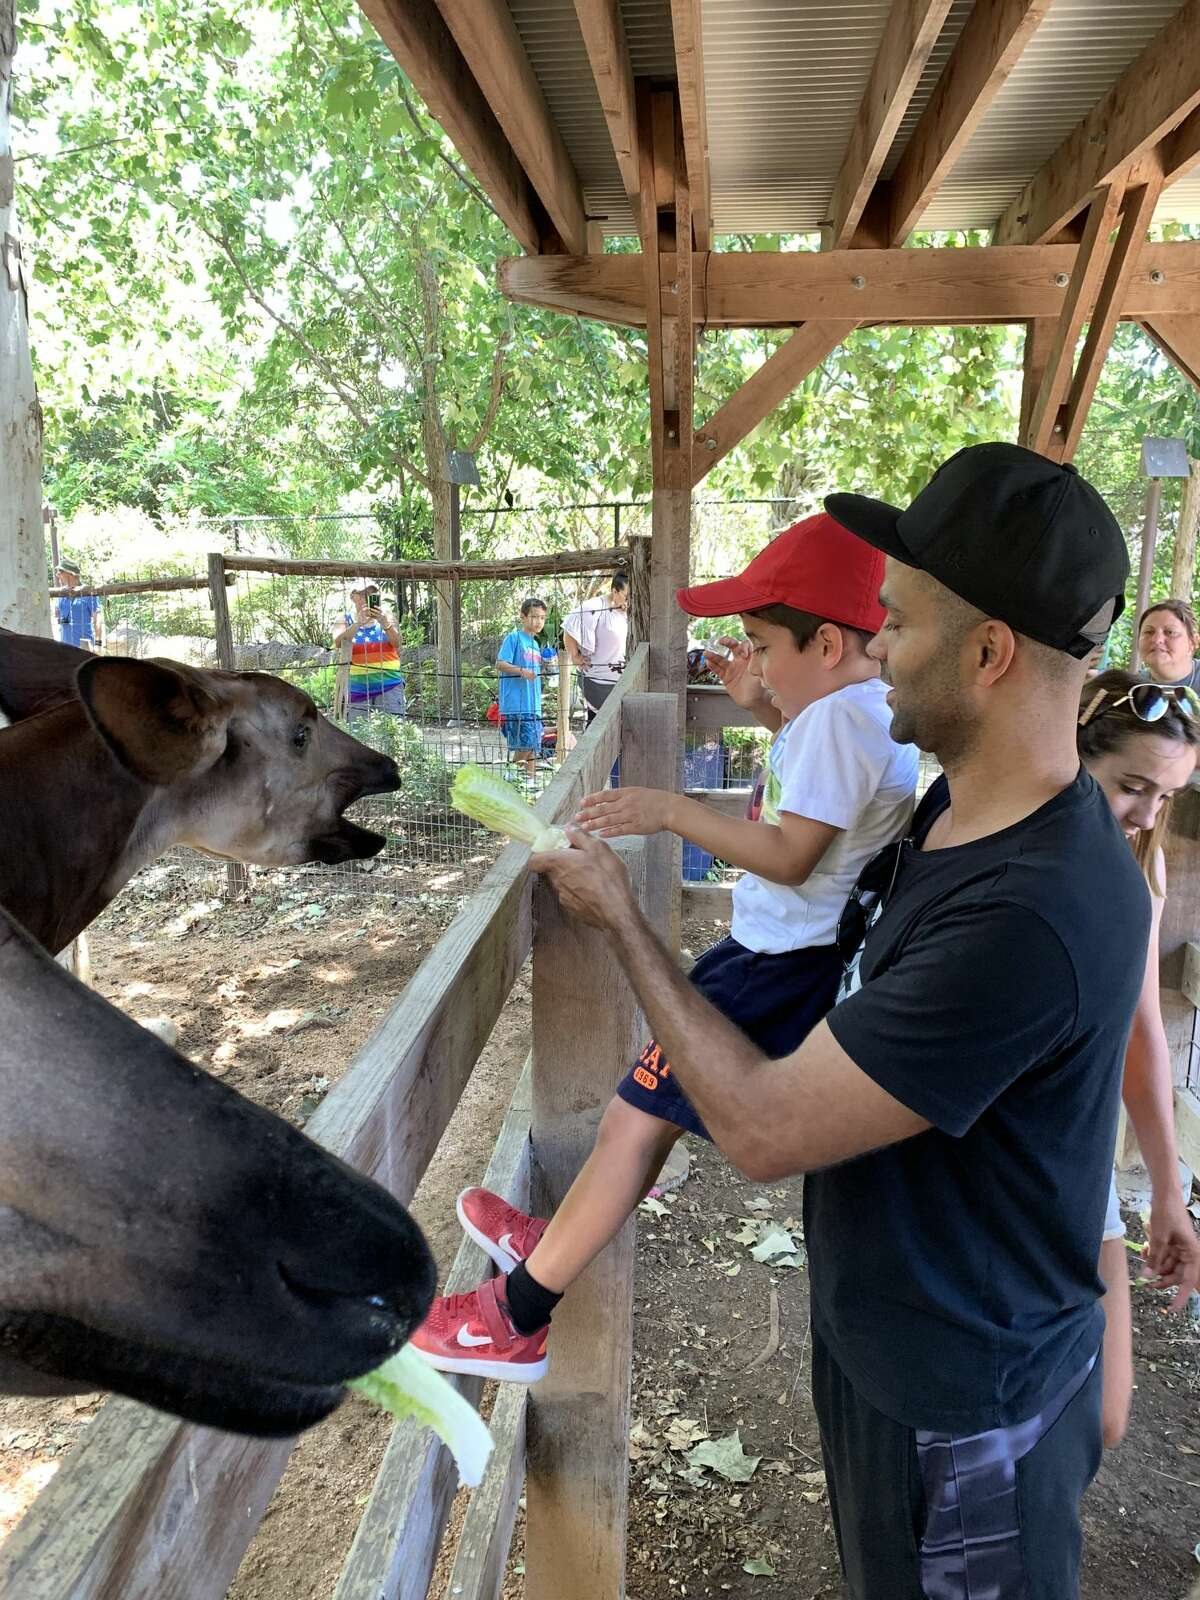 The zoo shared pictures with mySA showing four-time NBA Champion Tony Parker and his sons meeting and feeding different animals on Tuesday.